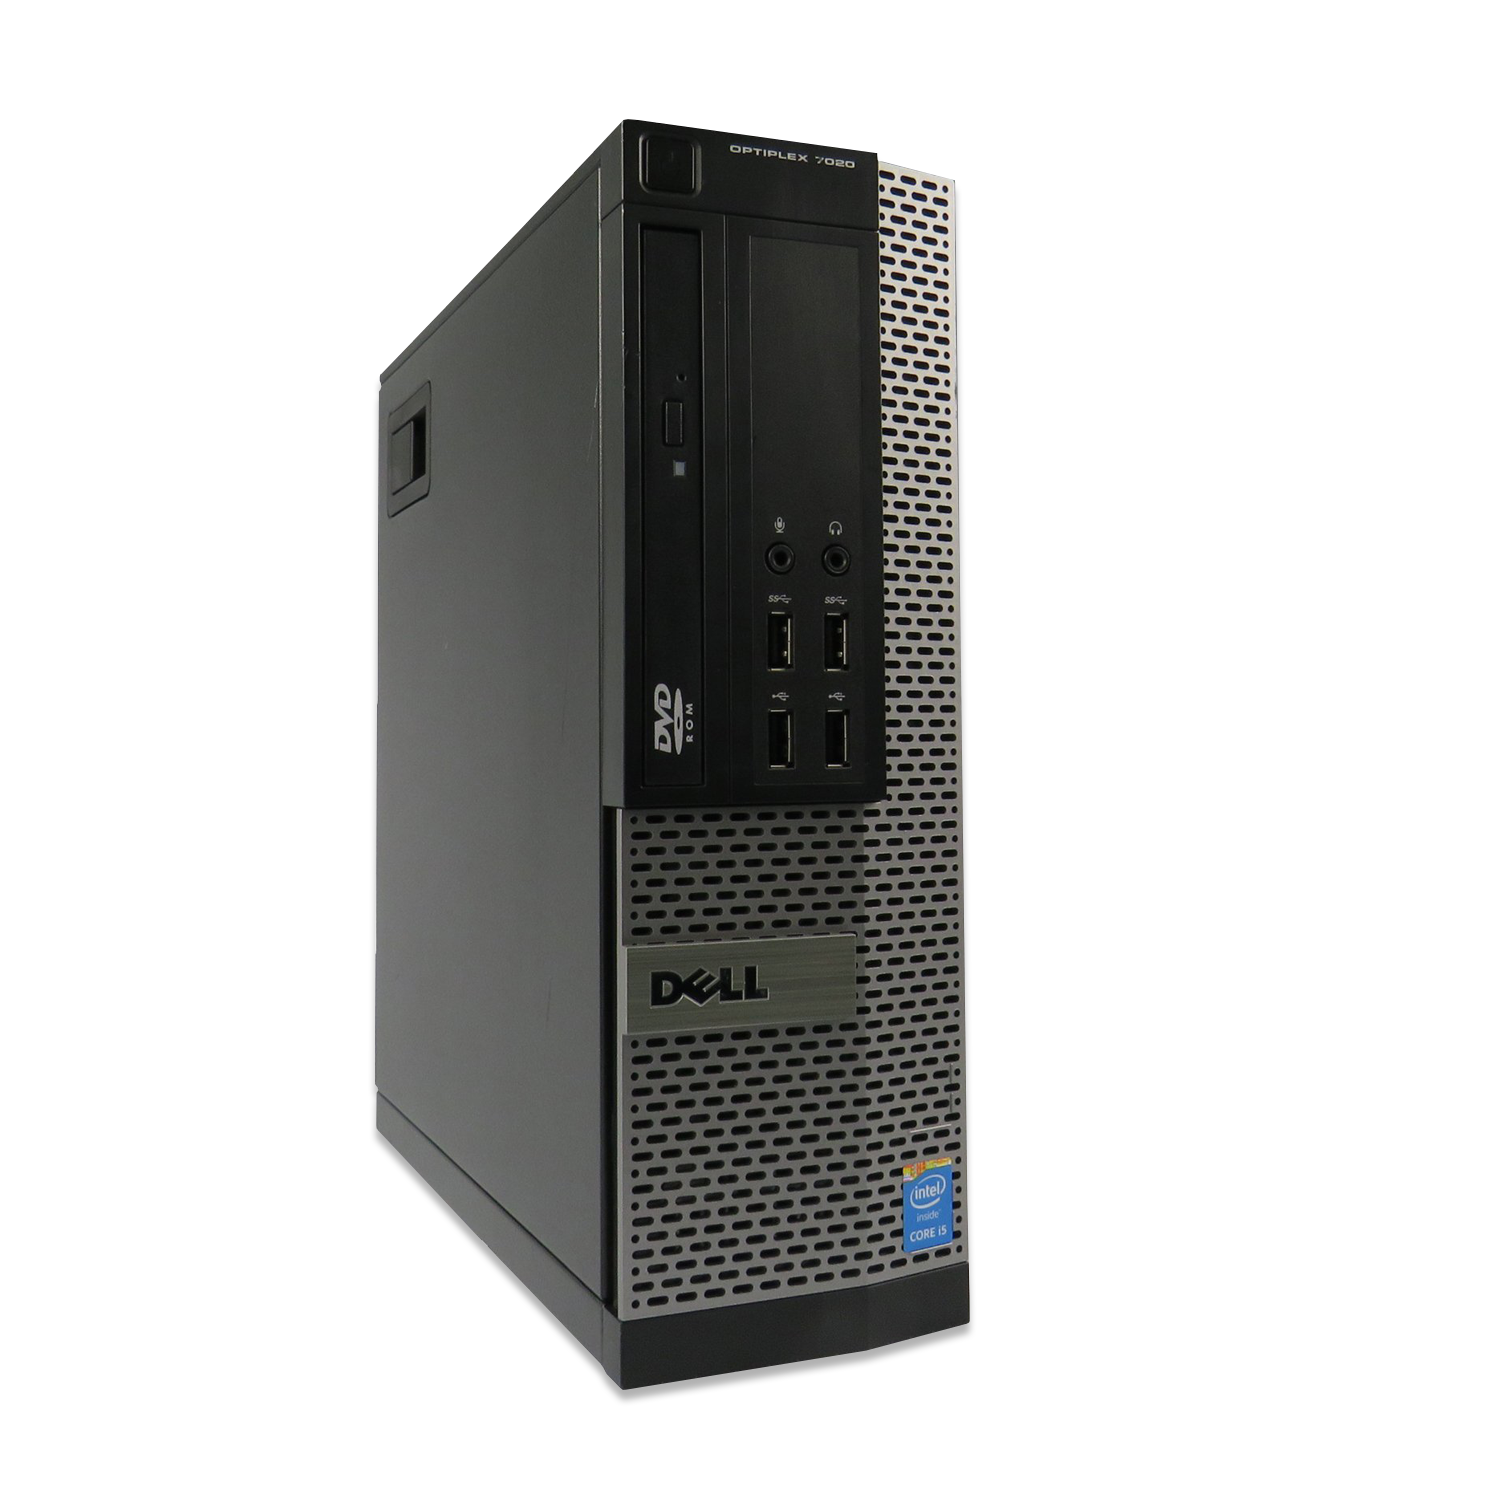 Dell Optiplex 7020 SFF i3 4th Gen. 8GB RAM 128GB SSD Win 10